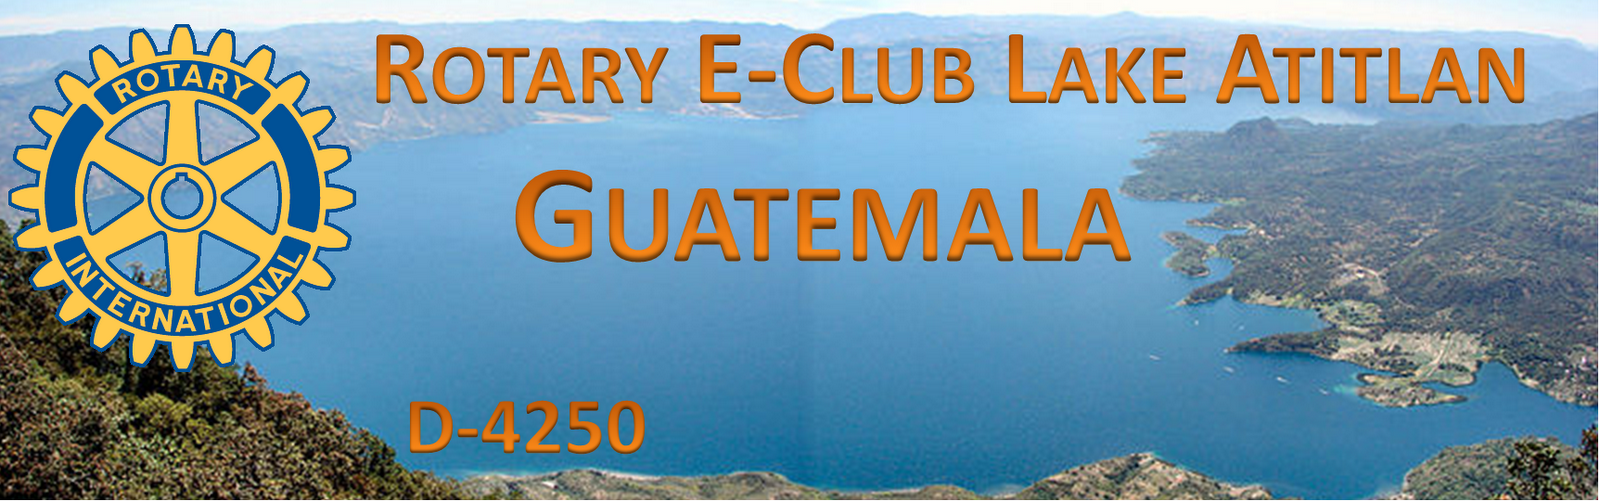 Meeting for Rotary E-Club Lake Atitlán D-4250